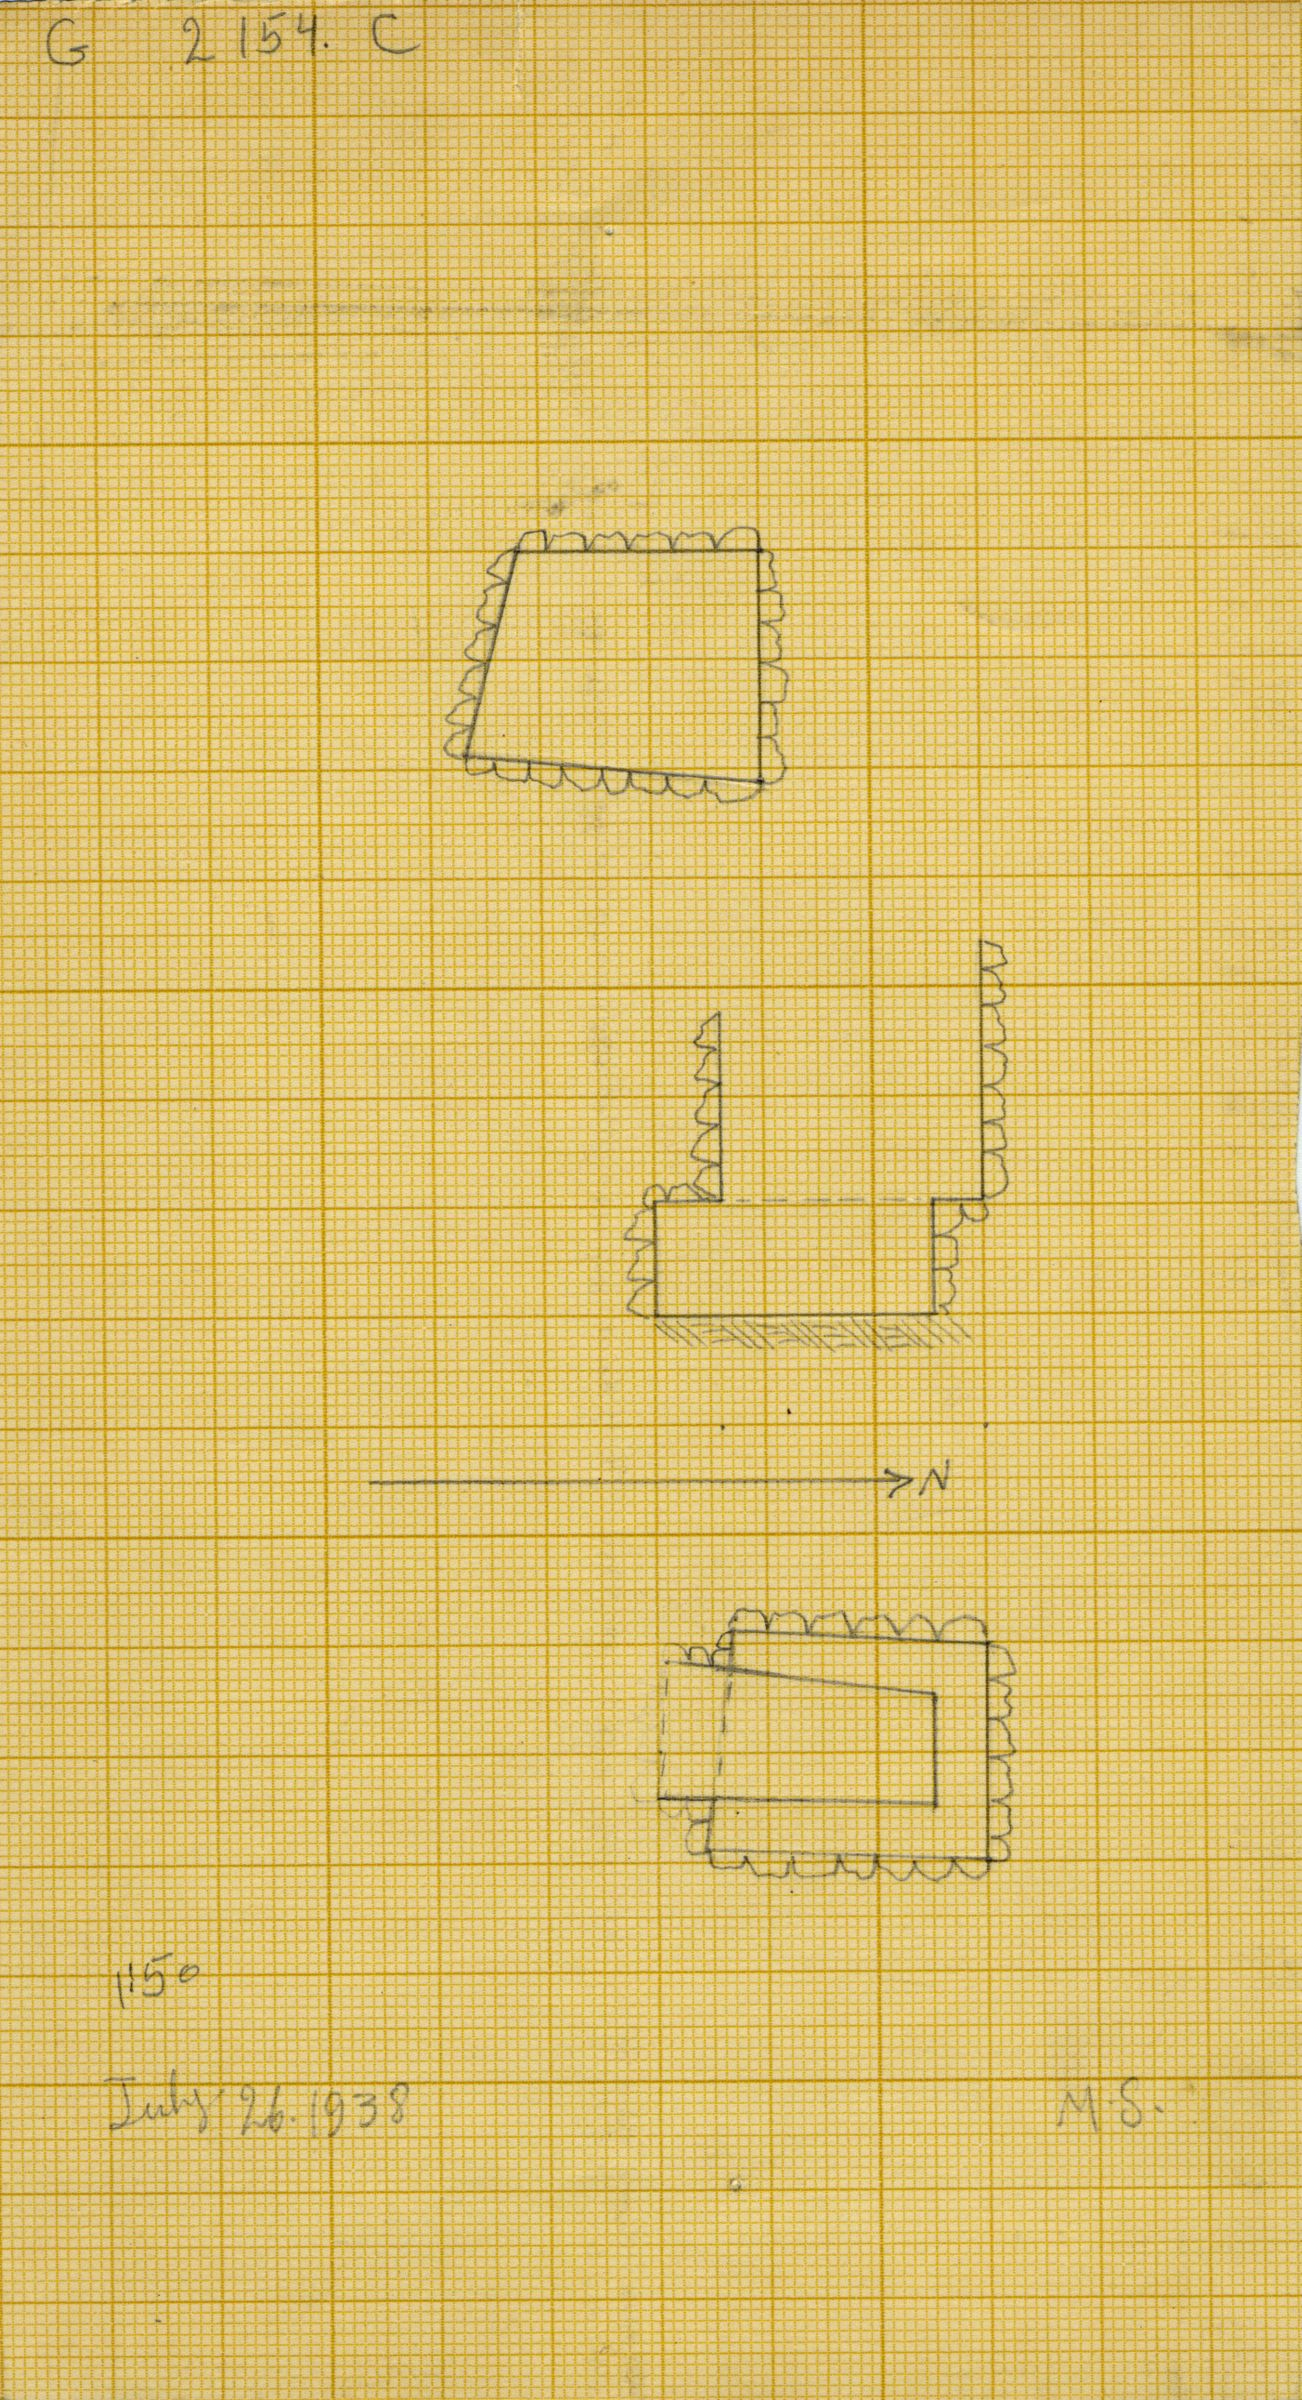 Maps and plans: G 2154, Shaft C